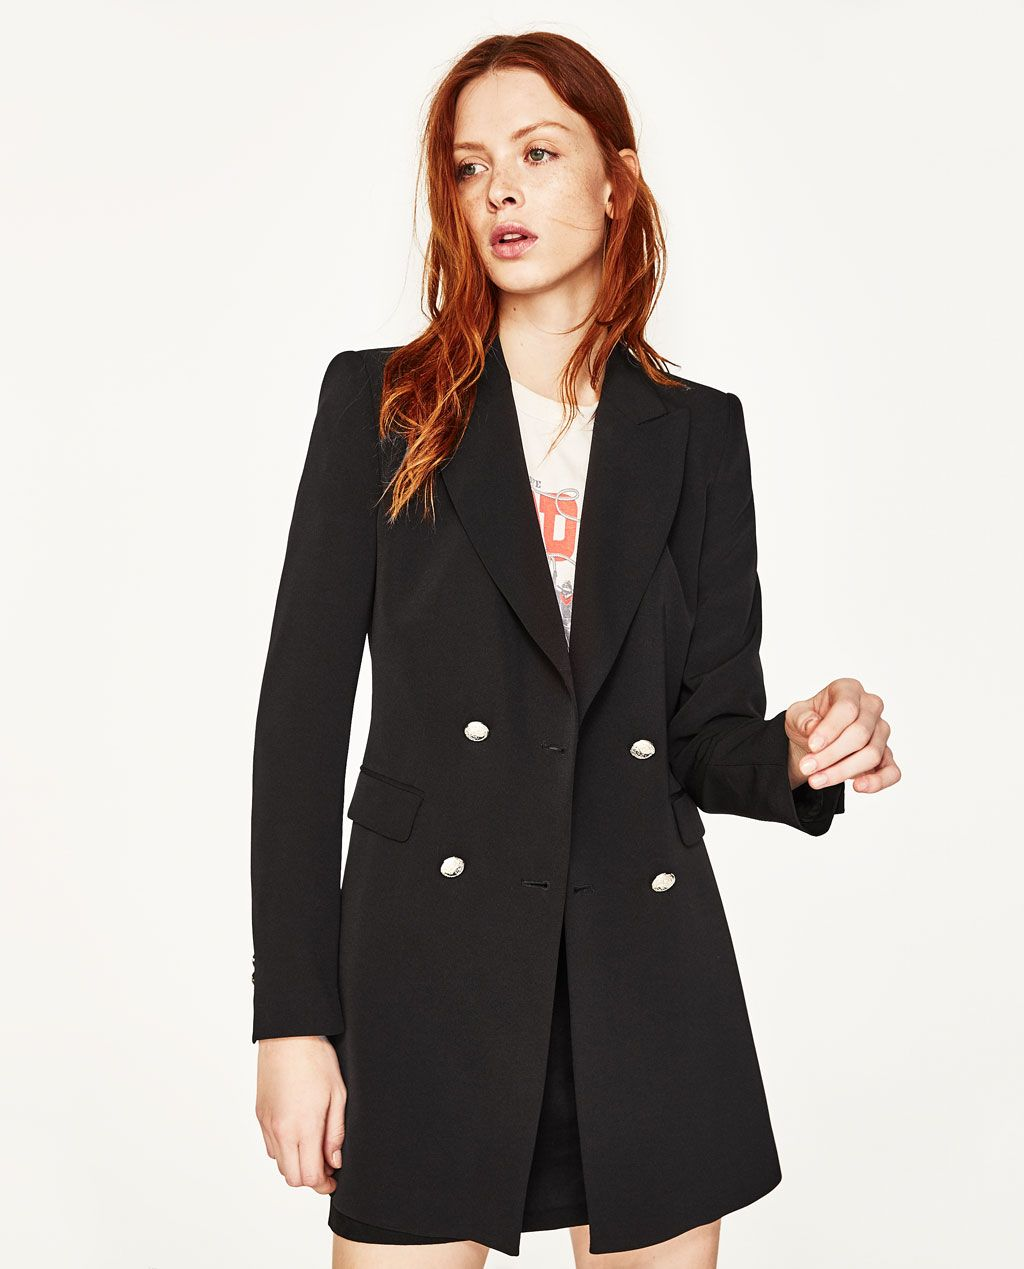 ad533dc0 DOUBLE-BREASTED JACKET WITH BUTTON FASTENING-NEW IN-WOMAN | ZARA ...